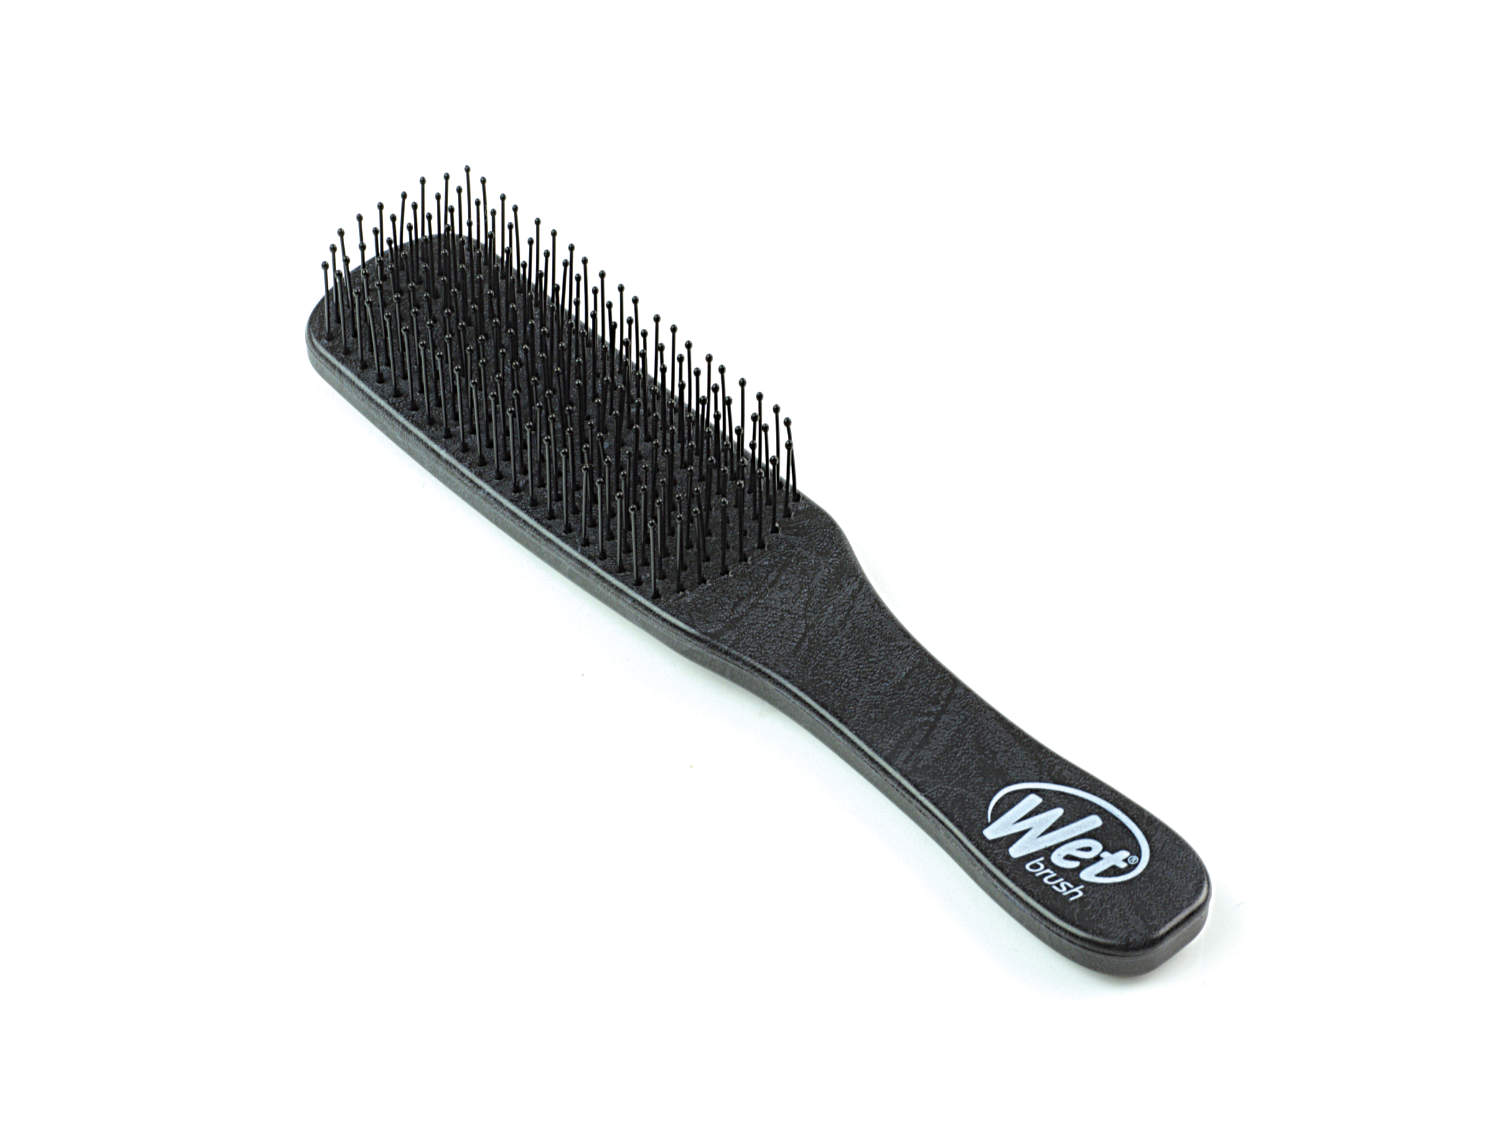 Arma Beauty - Wet Brush - B838WBLACK